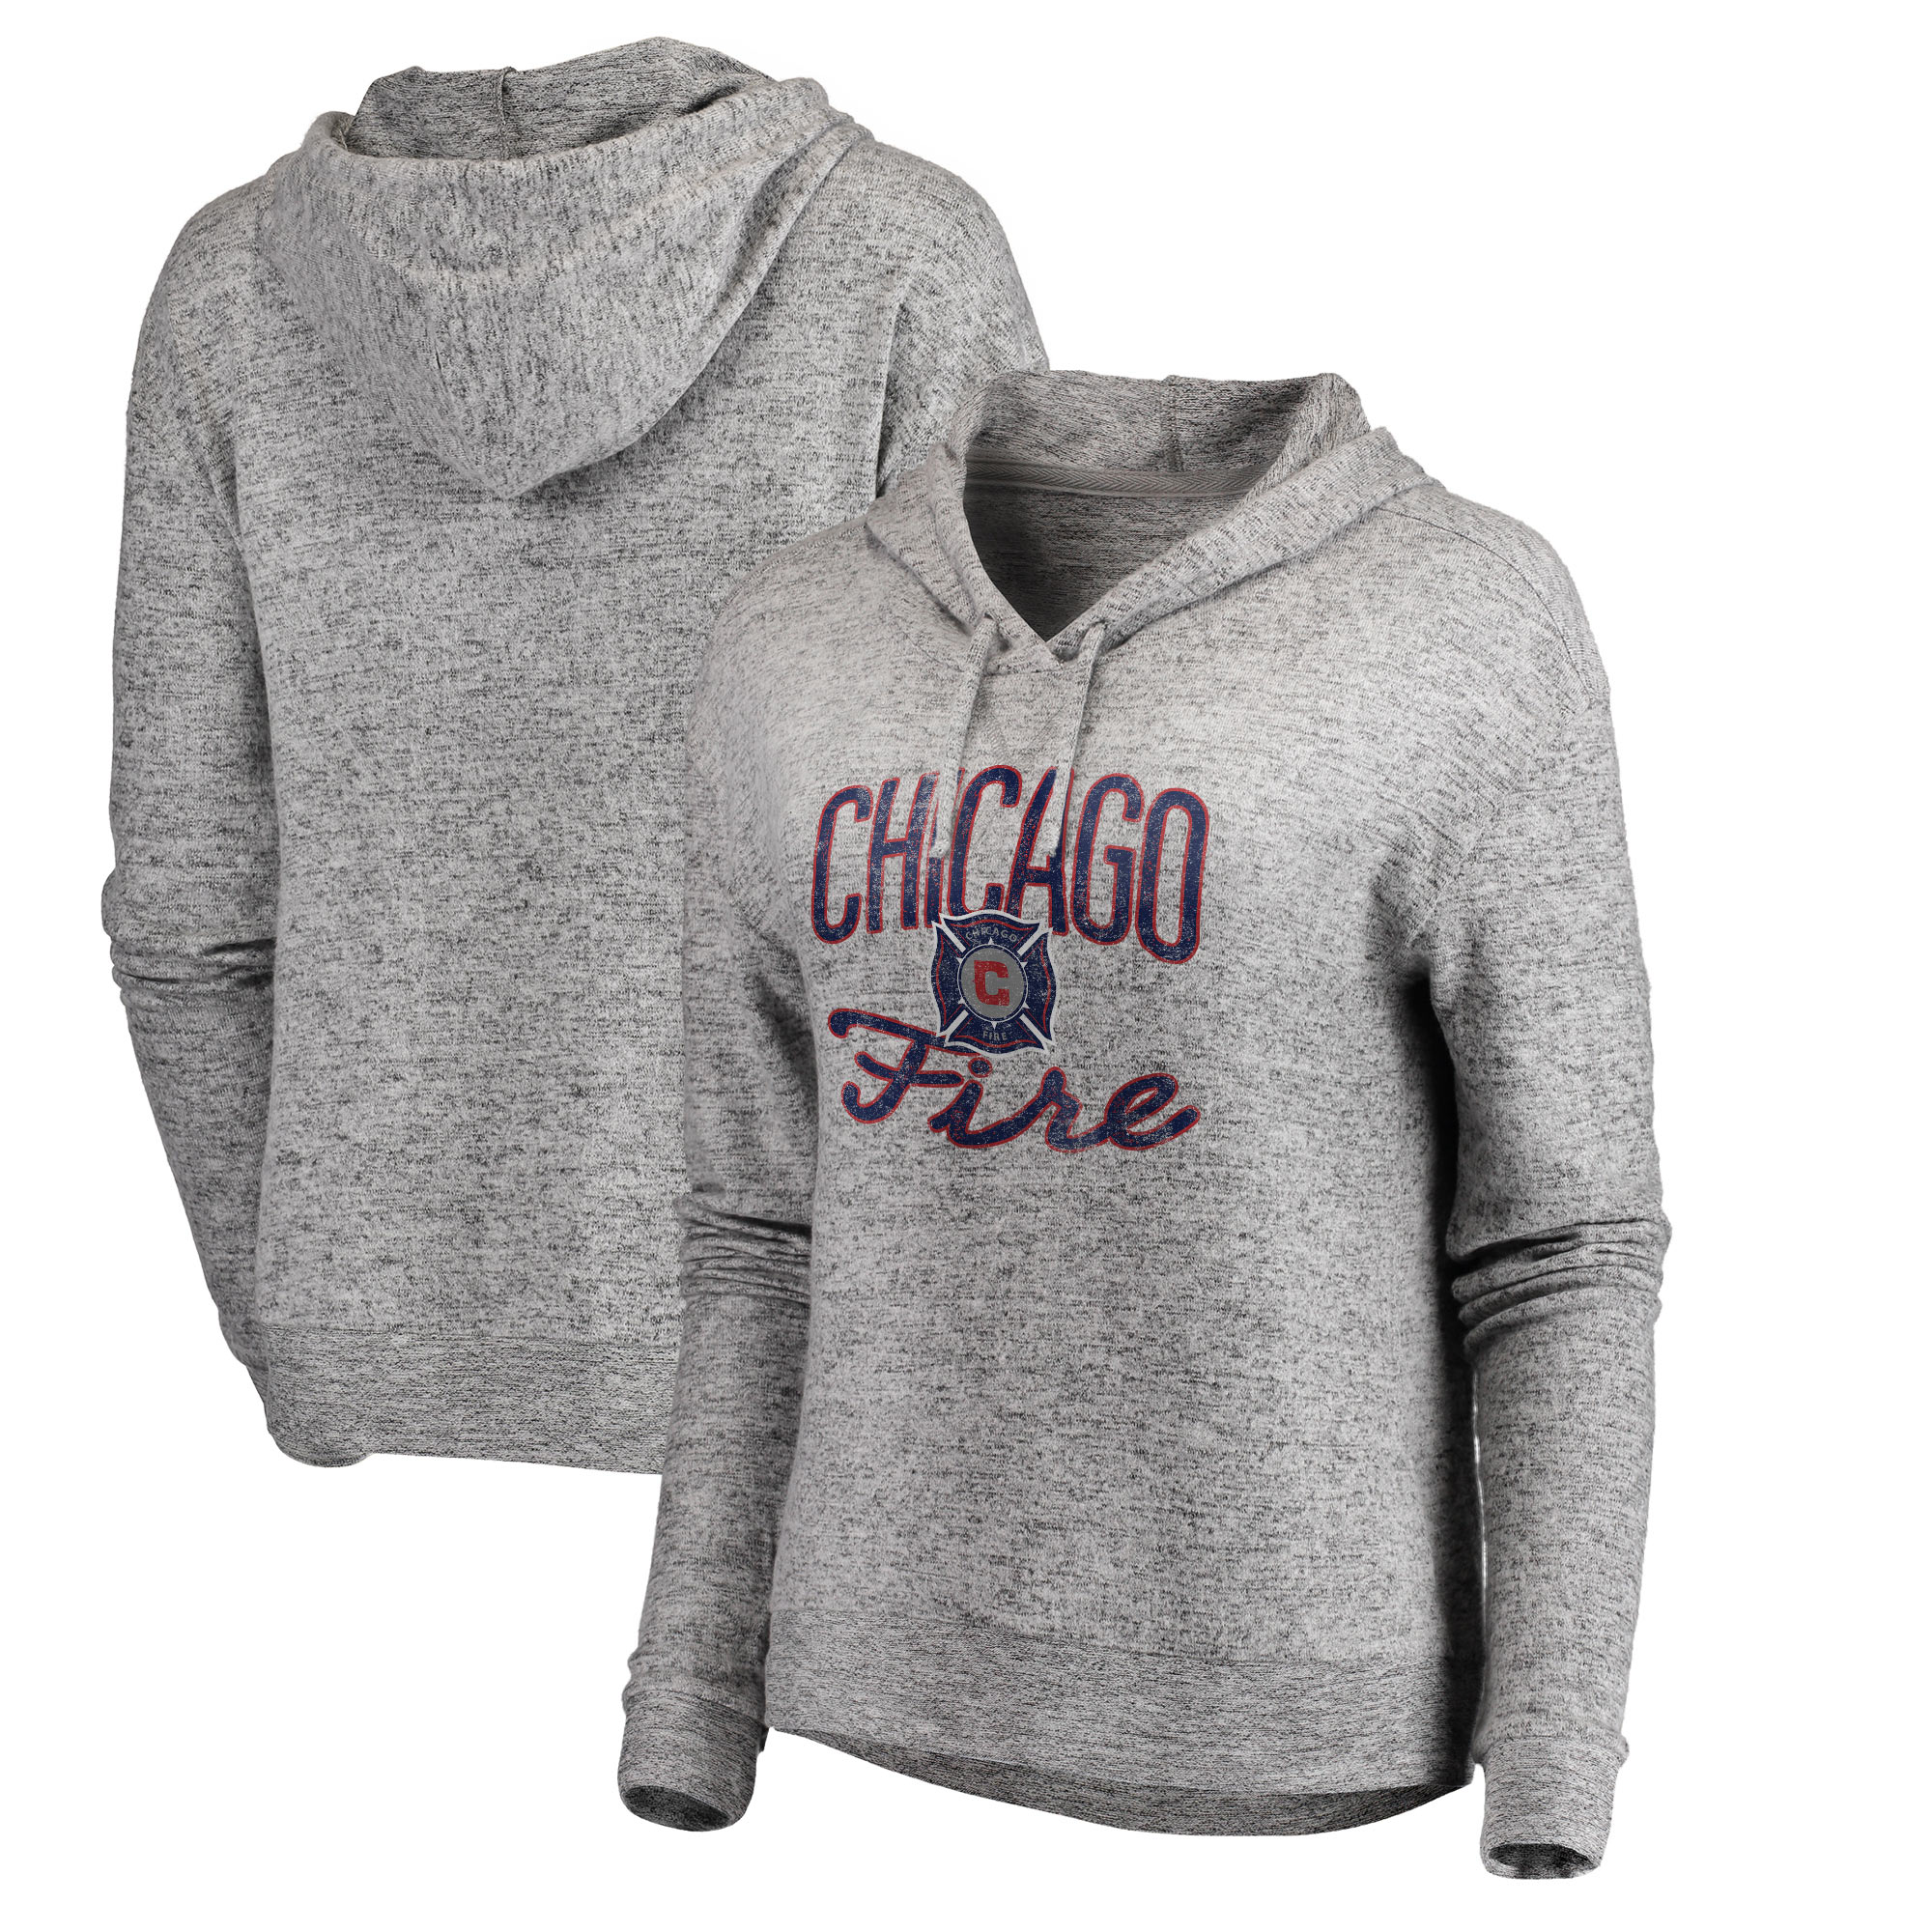 Chicago Fire Fanatics Branded Women's Cozy Collection Steadfast Fleece Tri-Blend Pullover Hoodie - Heathered Gray